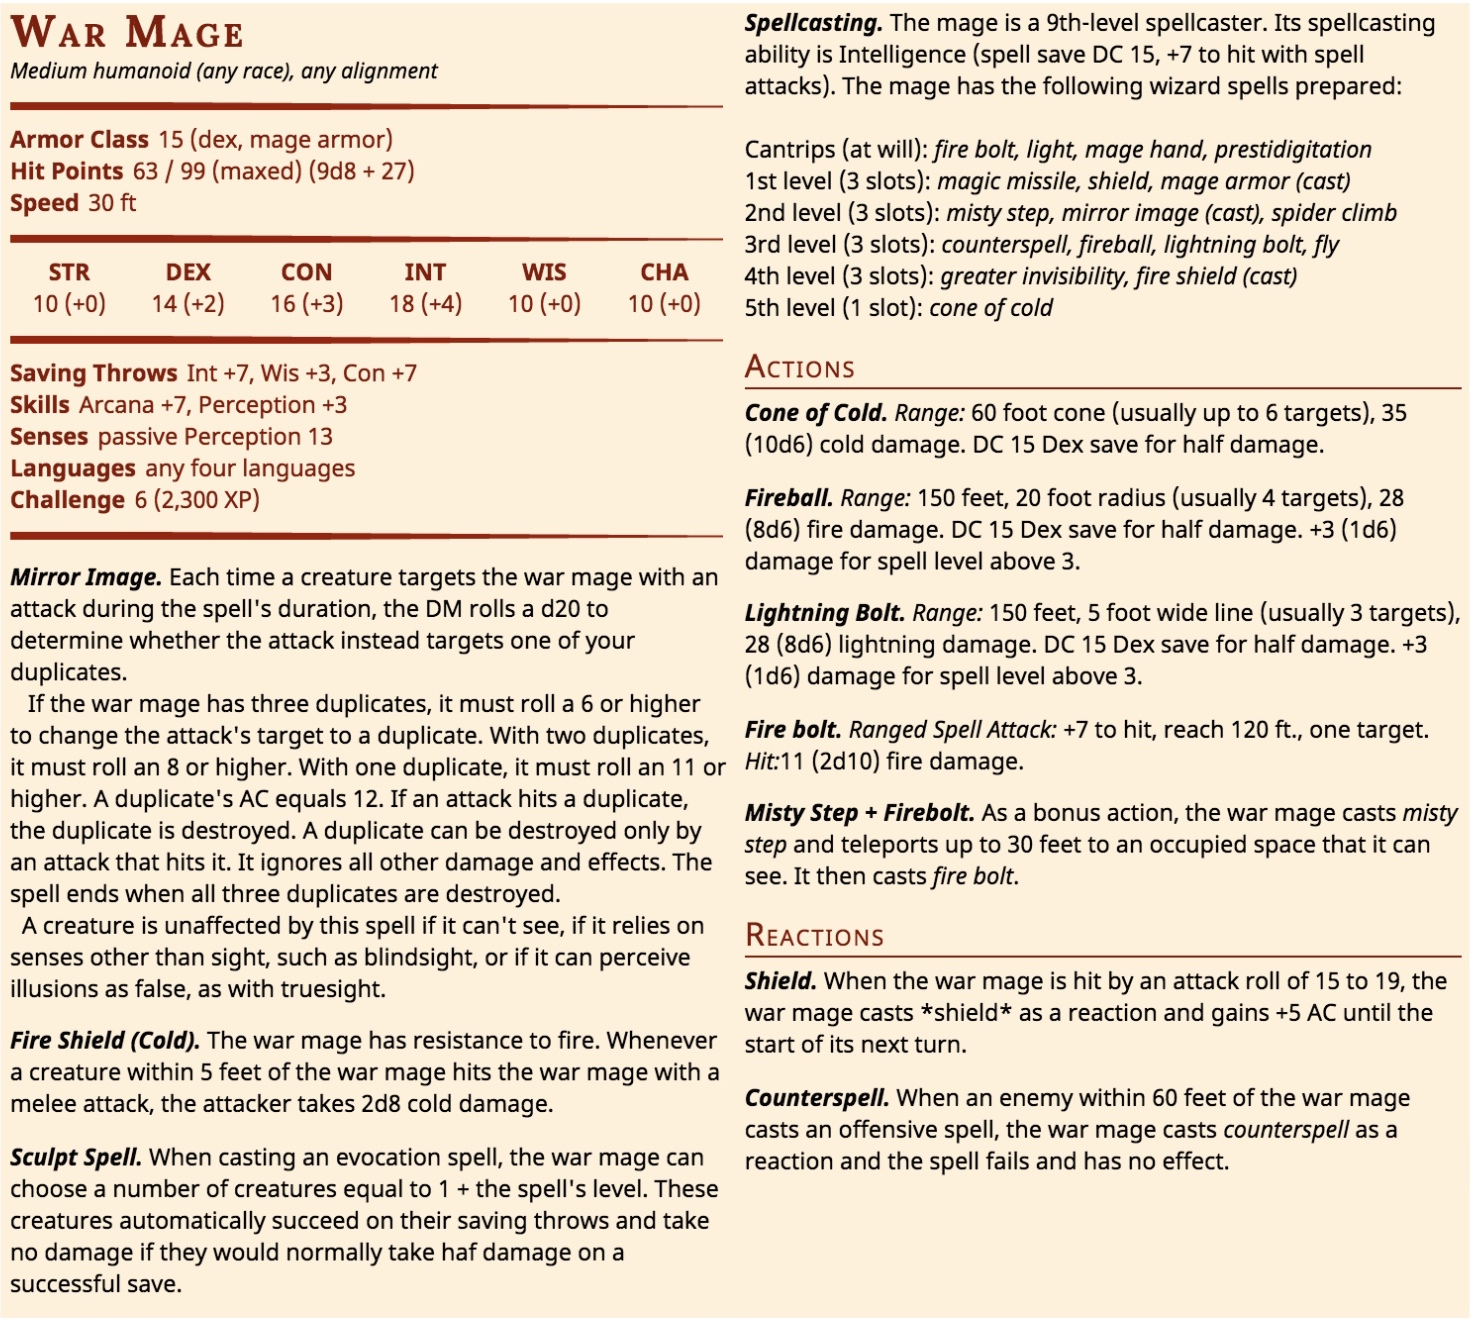 Empowering the War Mage: Sly Flourish